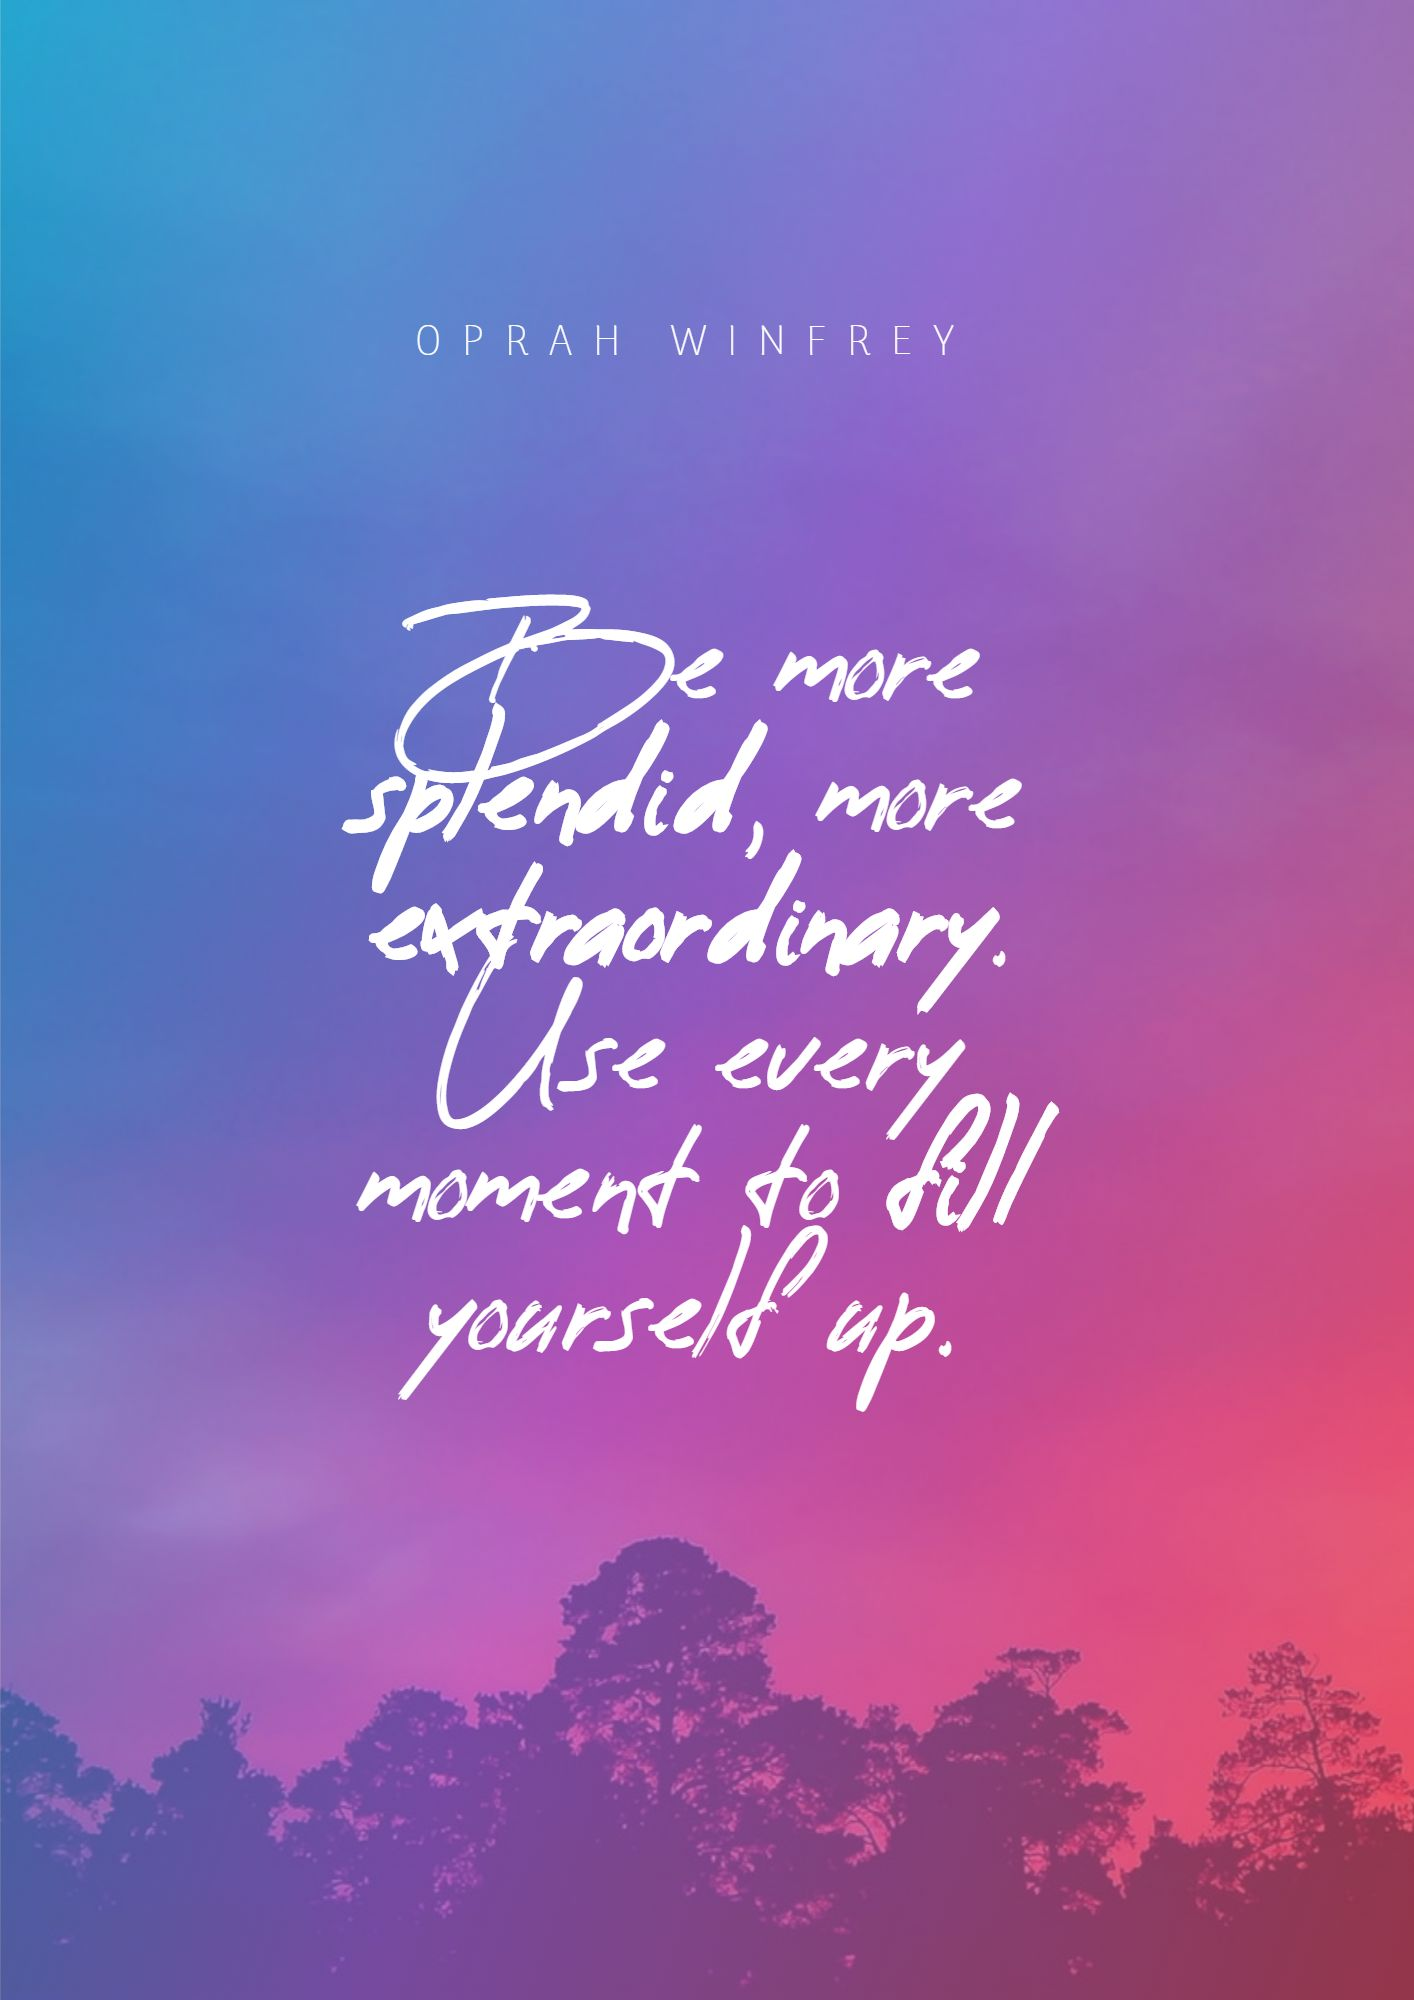 Quotes image of Be more splendid, more extraordinary. Use every moment to fill yourself up.